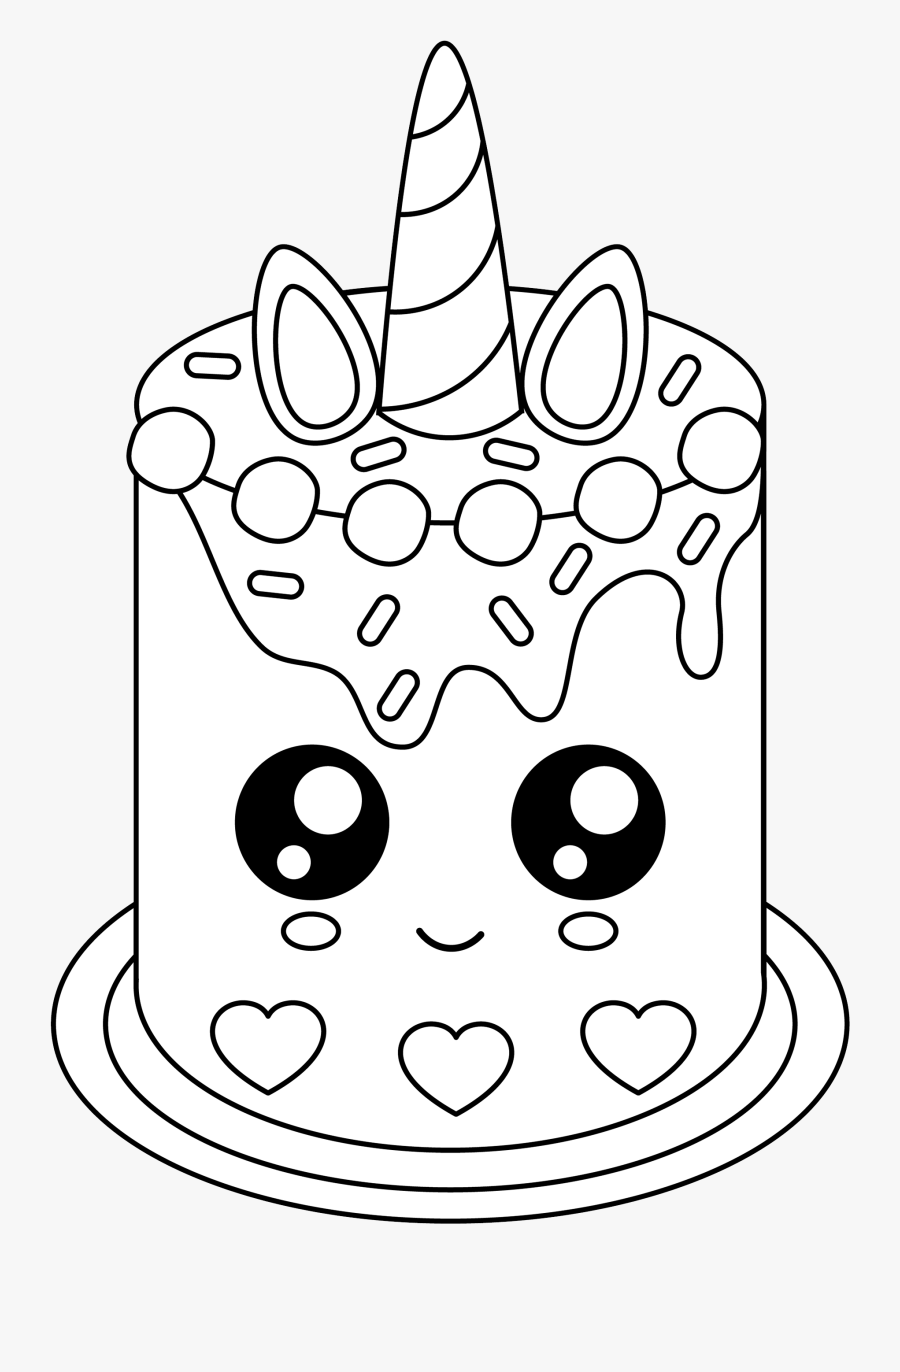 How To Draw A Unicorn Cake : unicorn, Unicorn, Coloring, Pages, Transparent, Clipart, ClipartKey